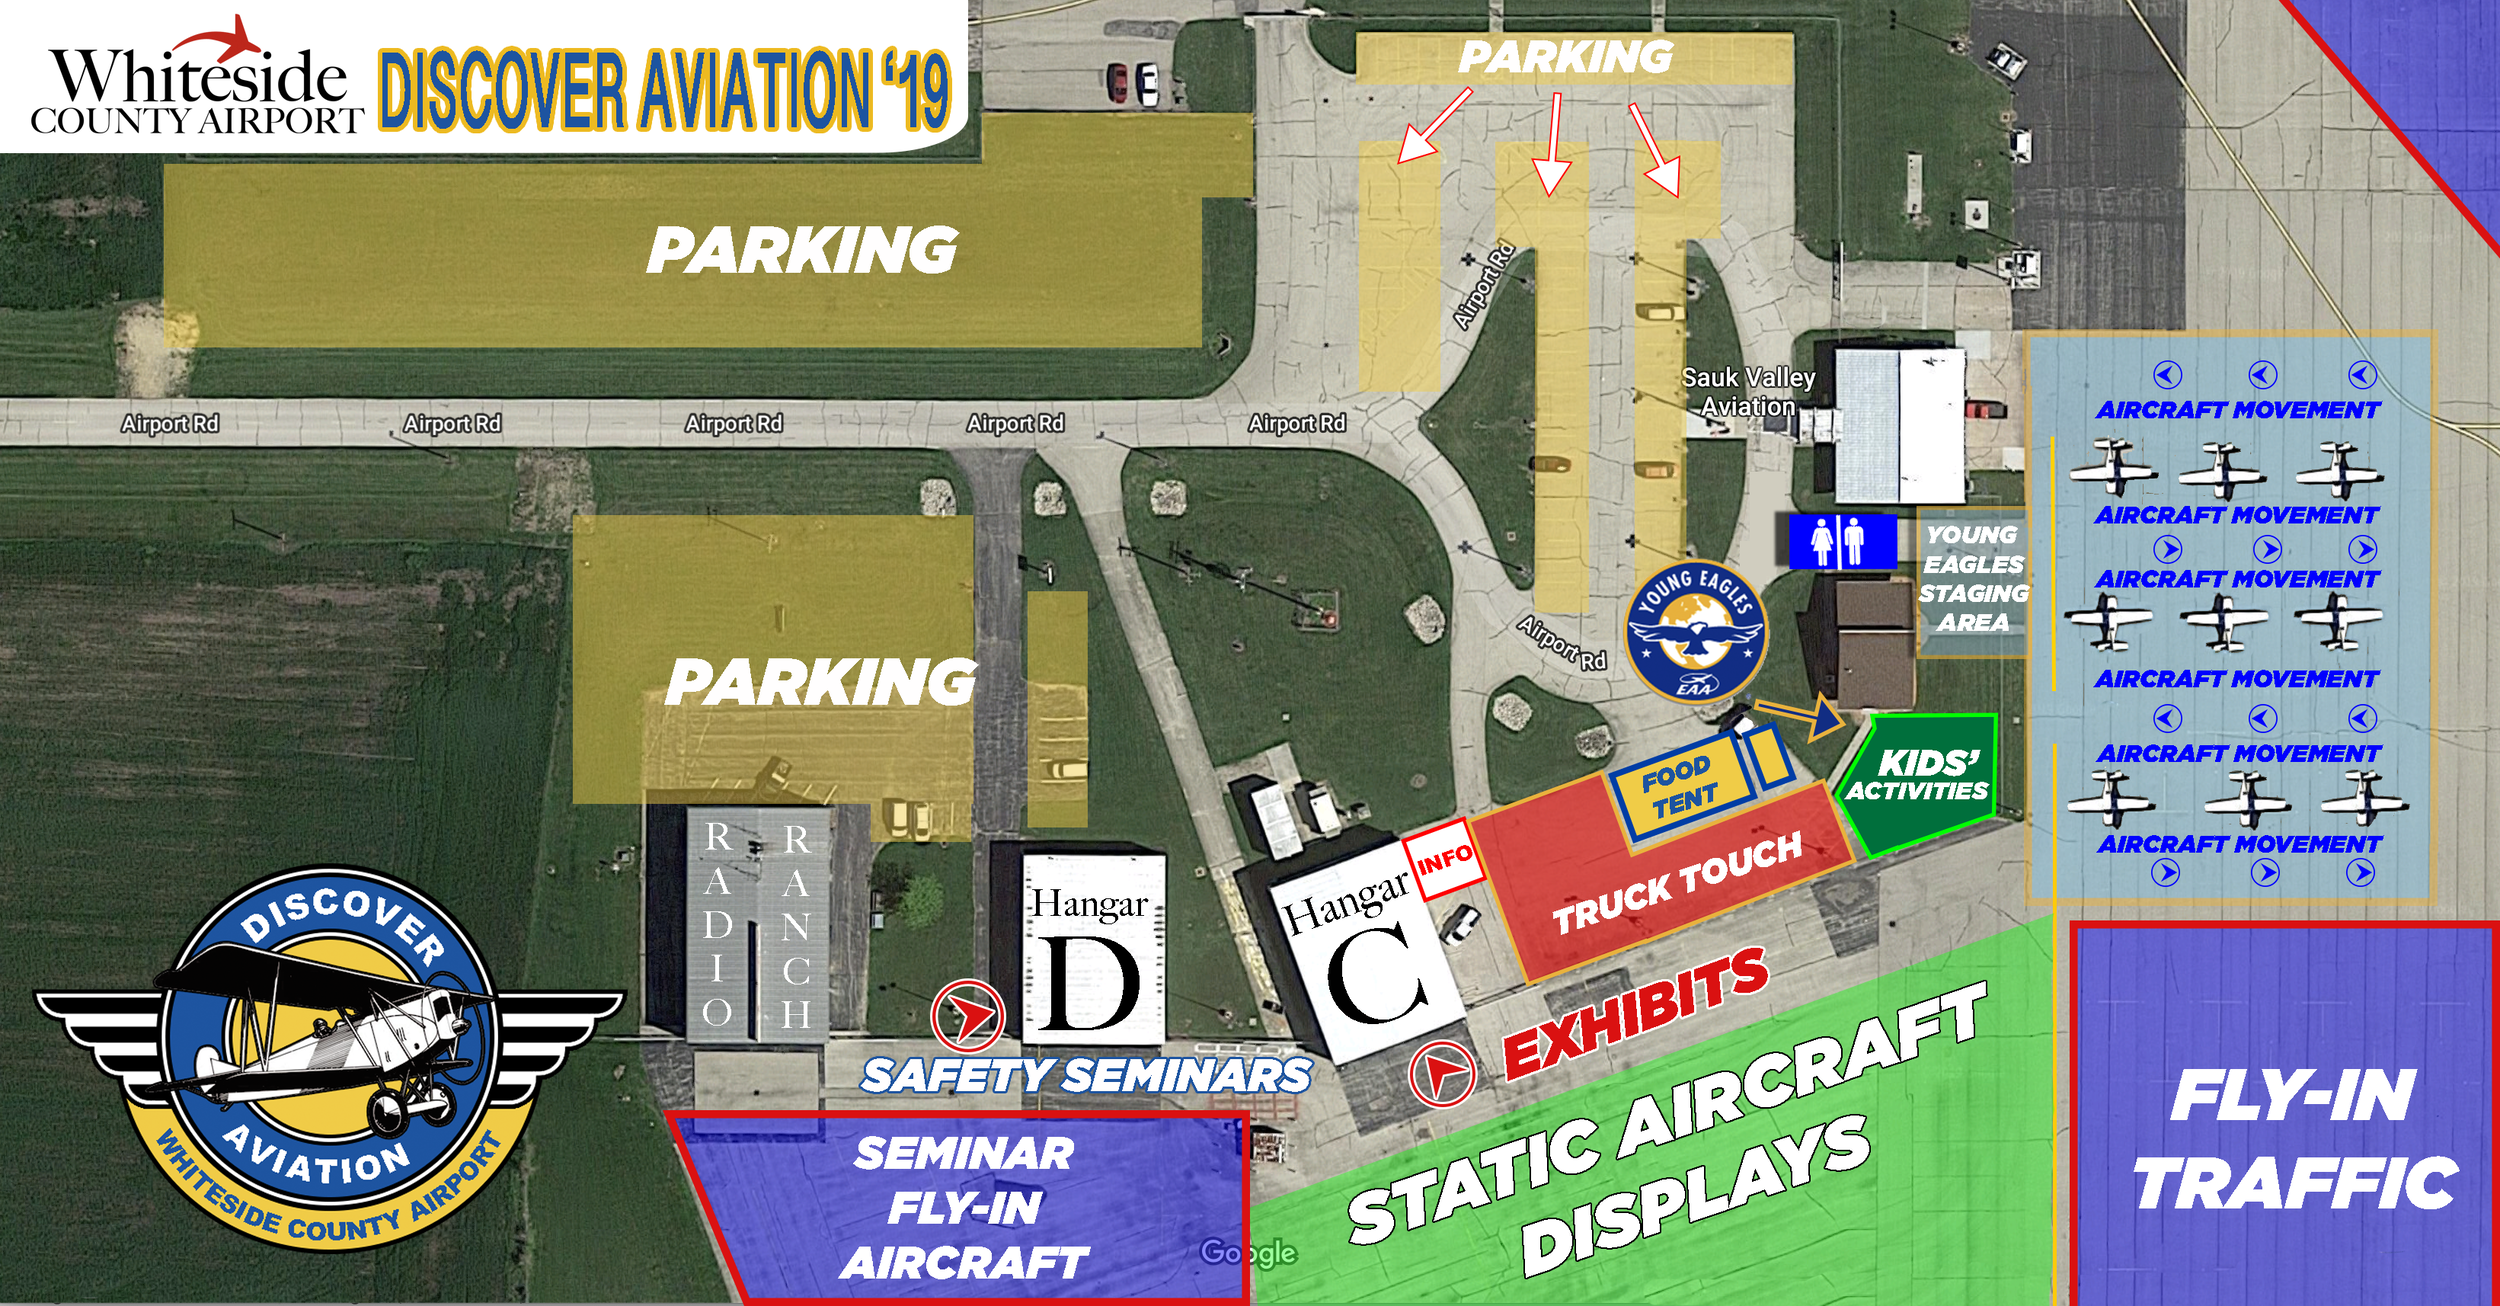 DiscoverAviationMap.png